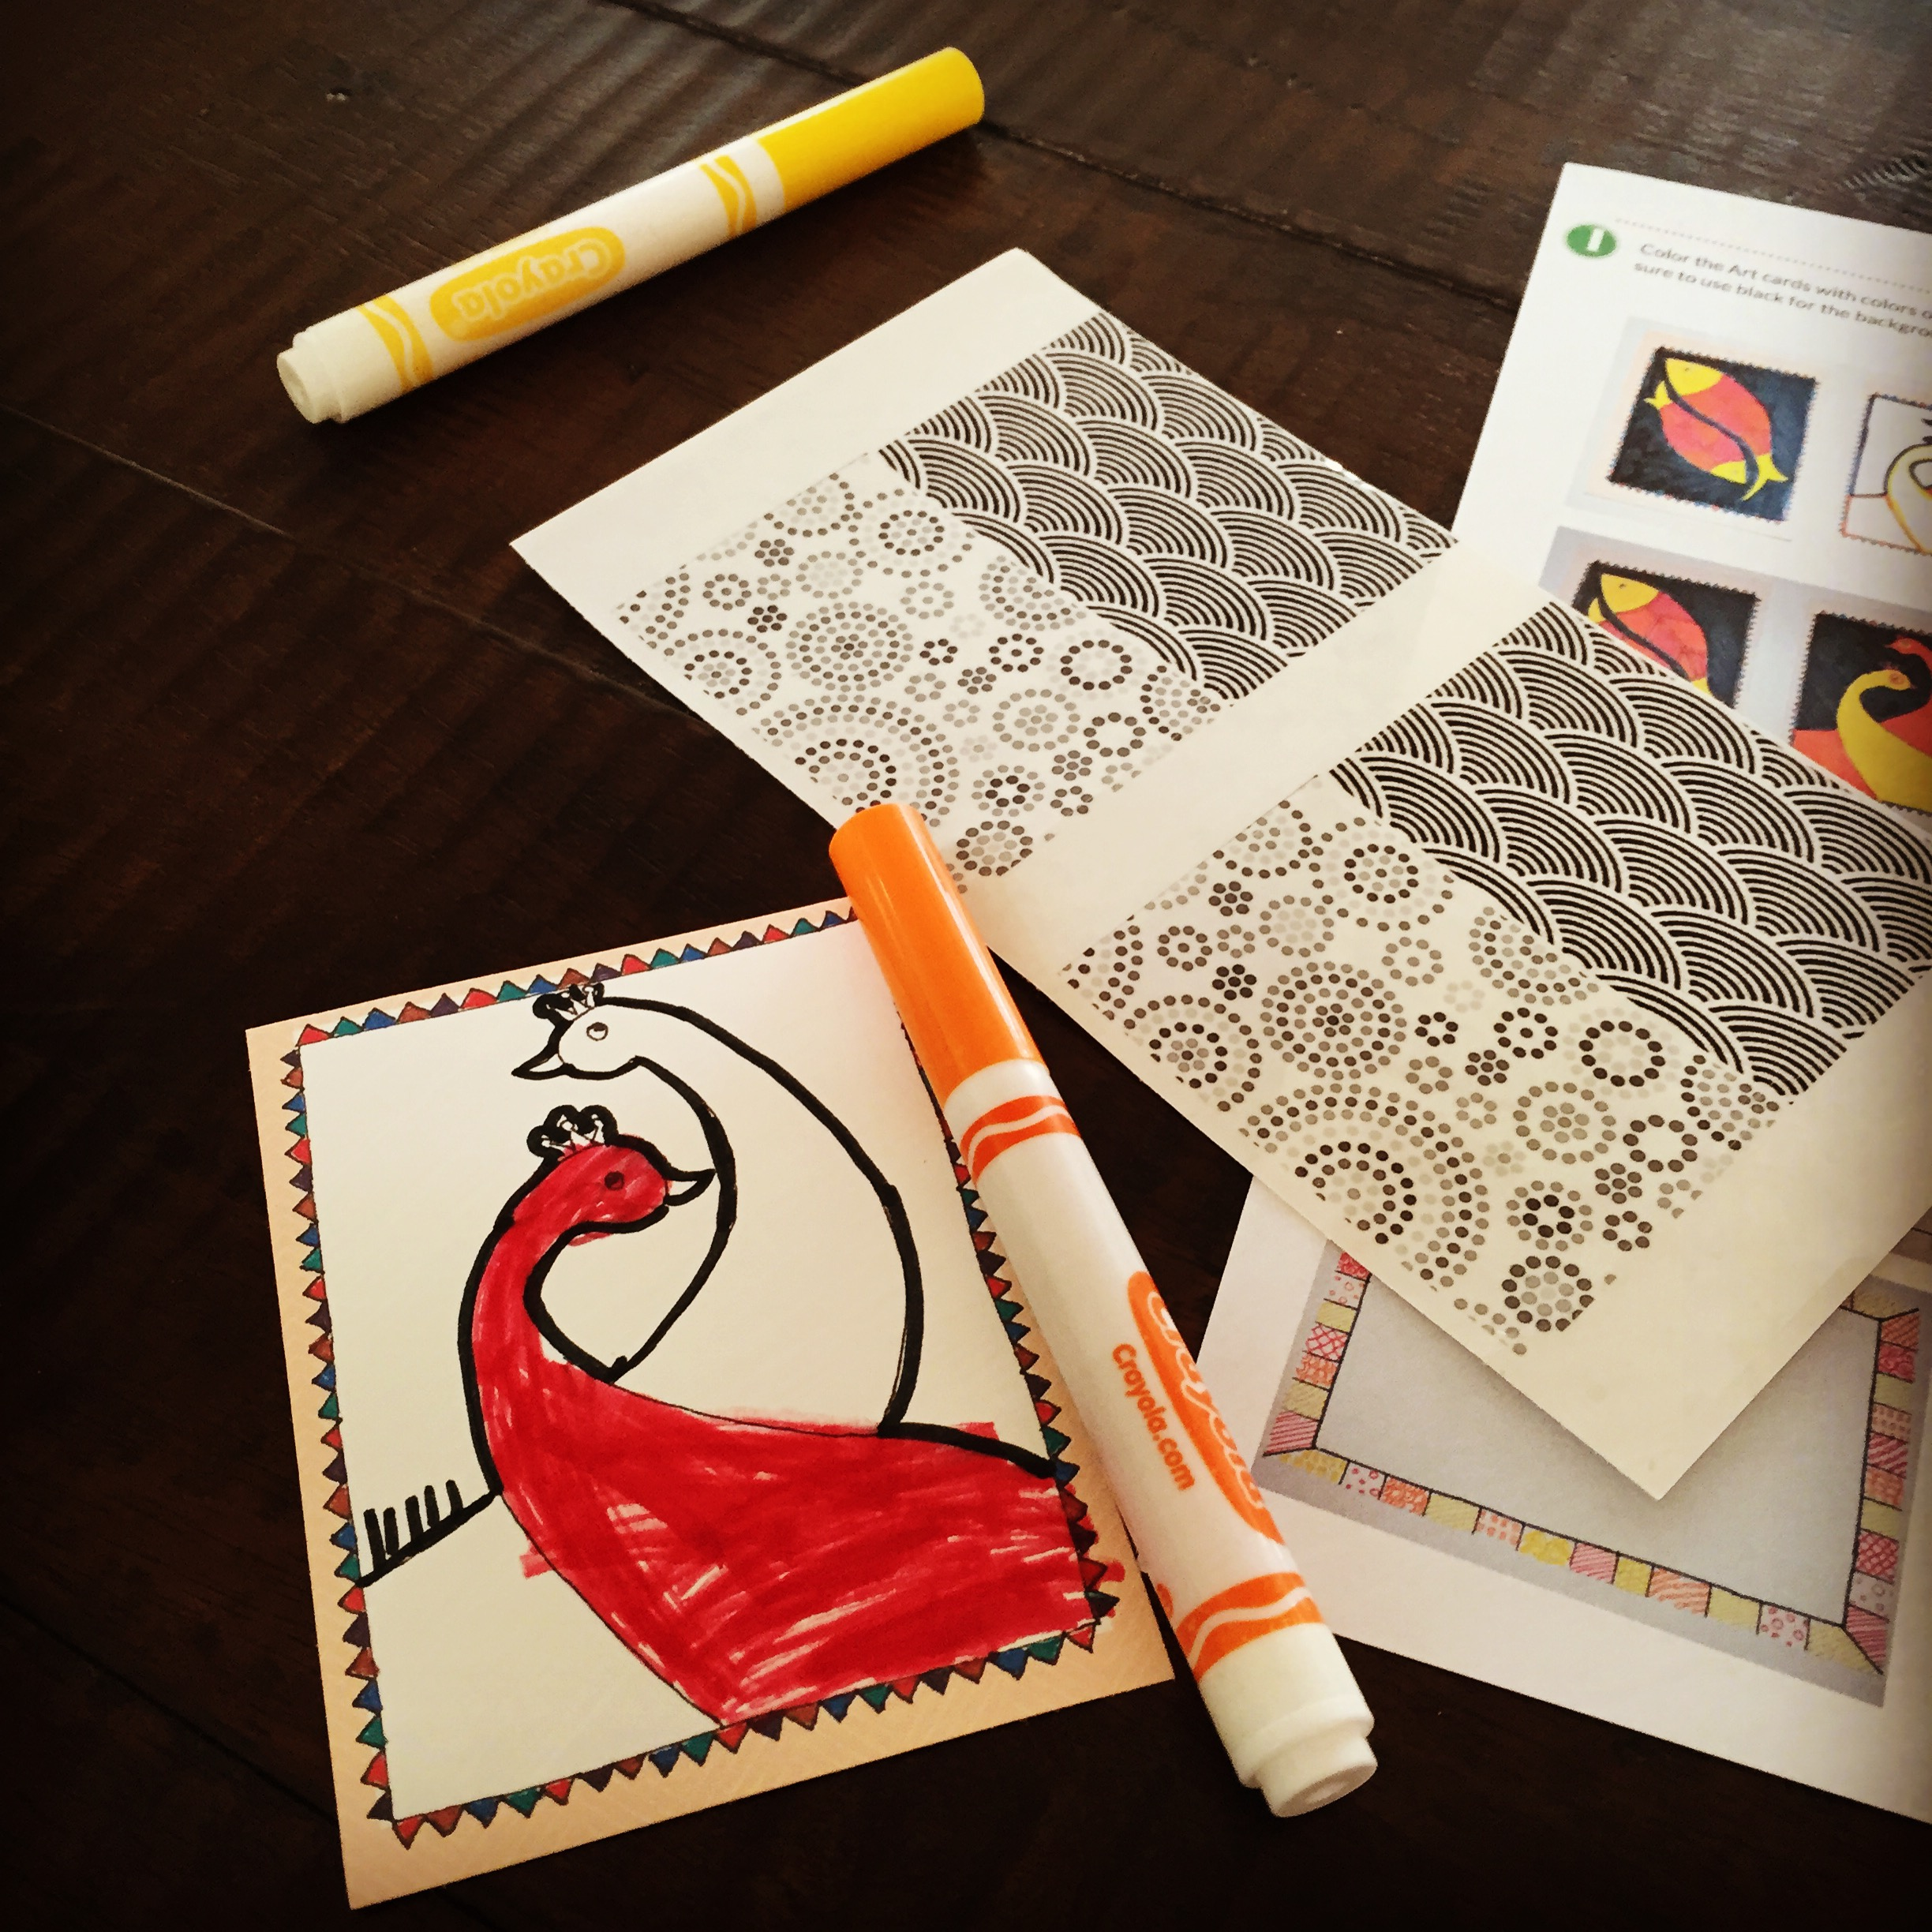 Gond Art for Preschoolers